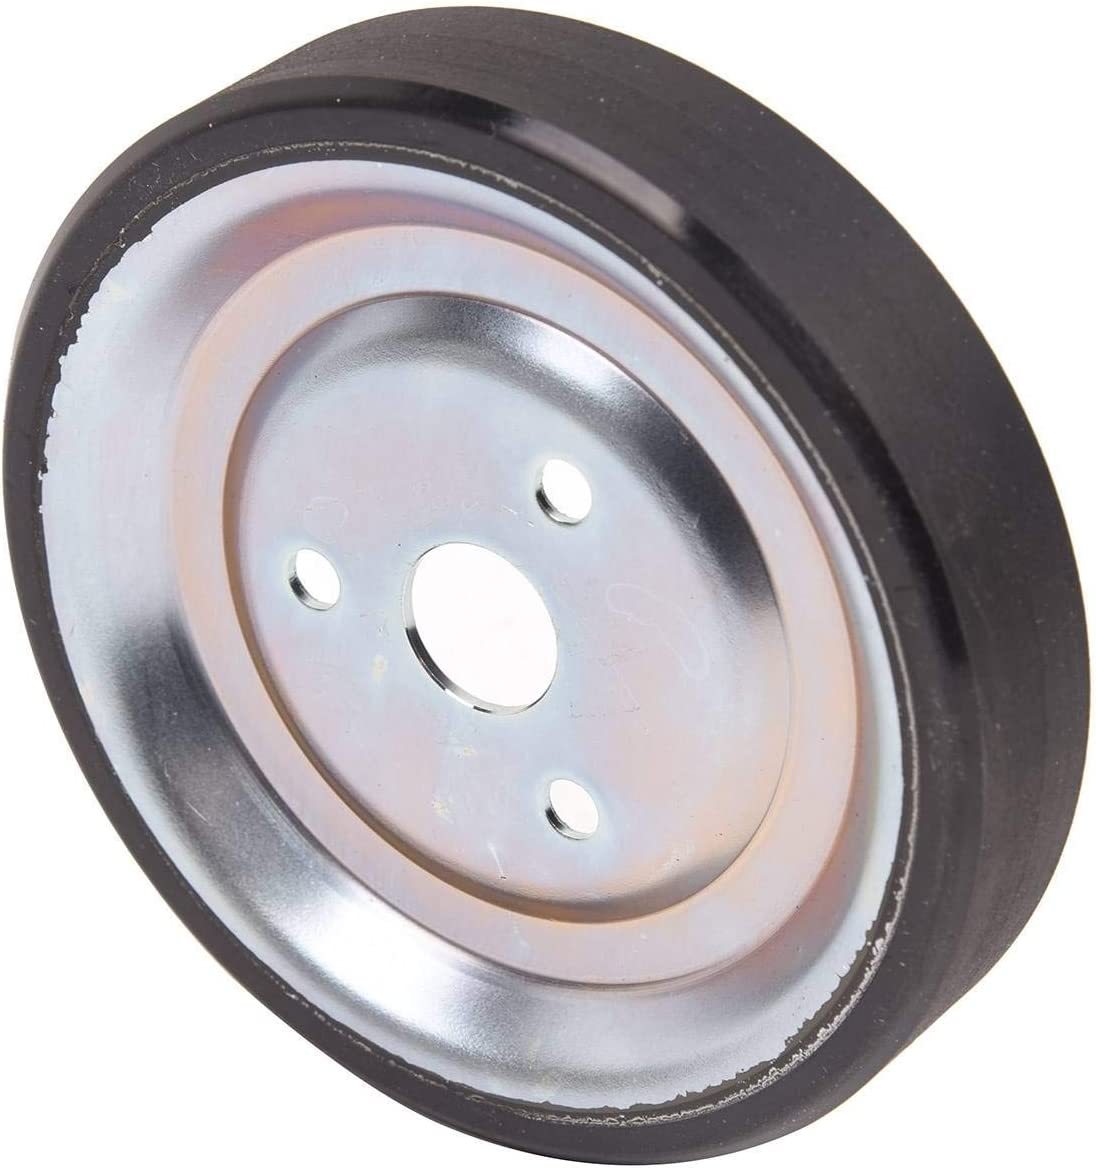 Bapmic 11517619020 Engine Water Pump Pulley for Mini Cooper 2007-2014 Countryman 2011-2014